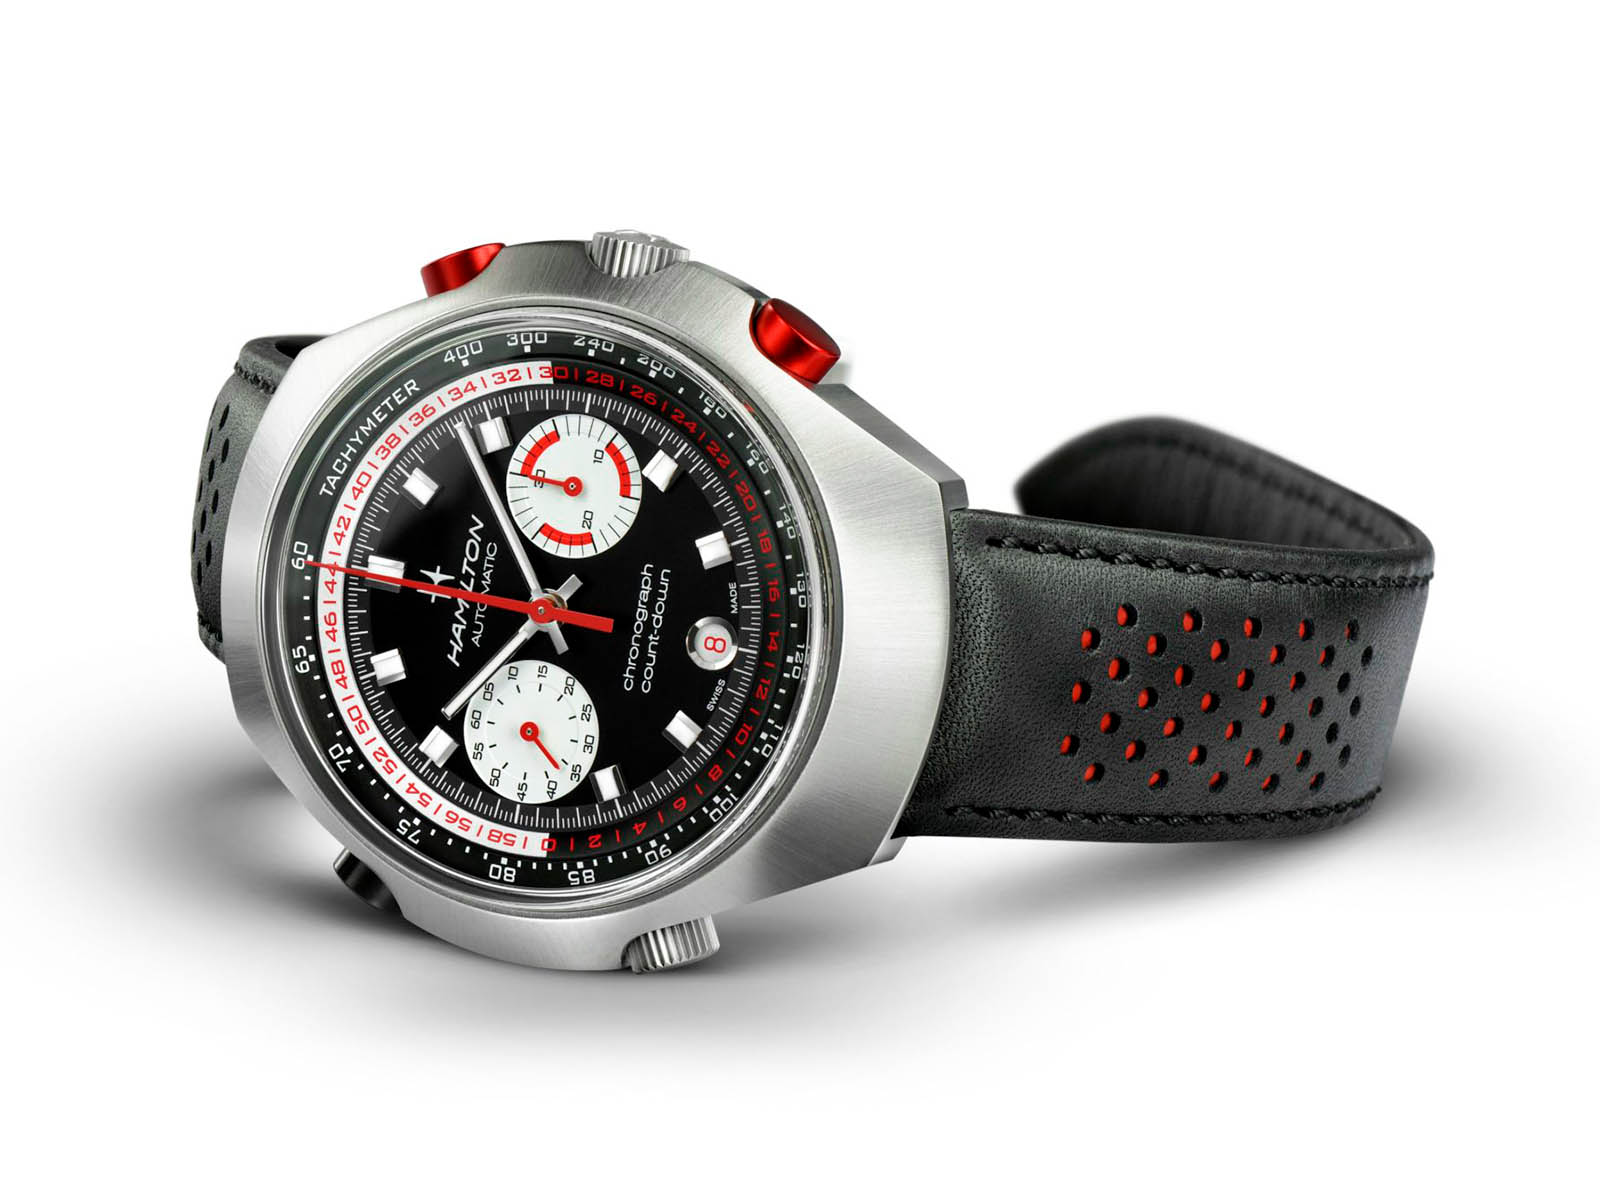 h51616731-hamilton-chrono-matic-50-auto-chrono-limited-edition-4.jpg